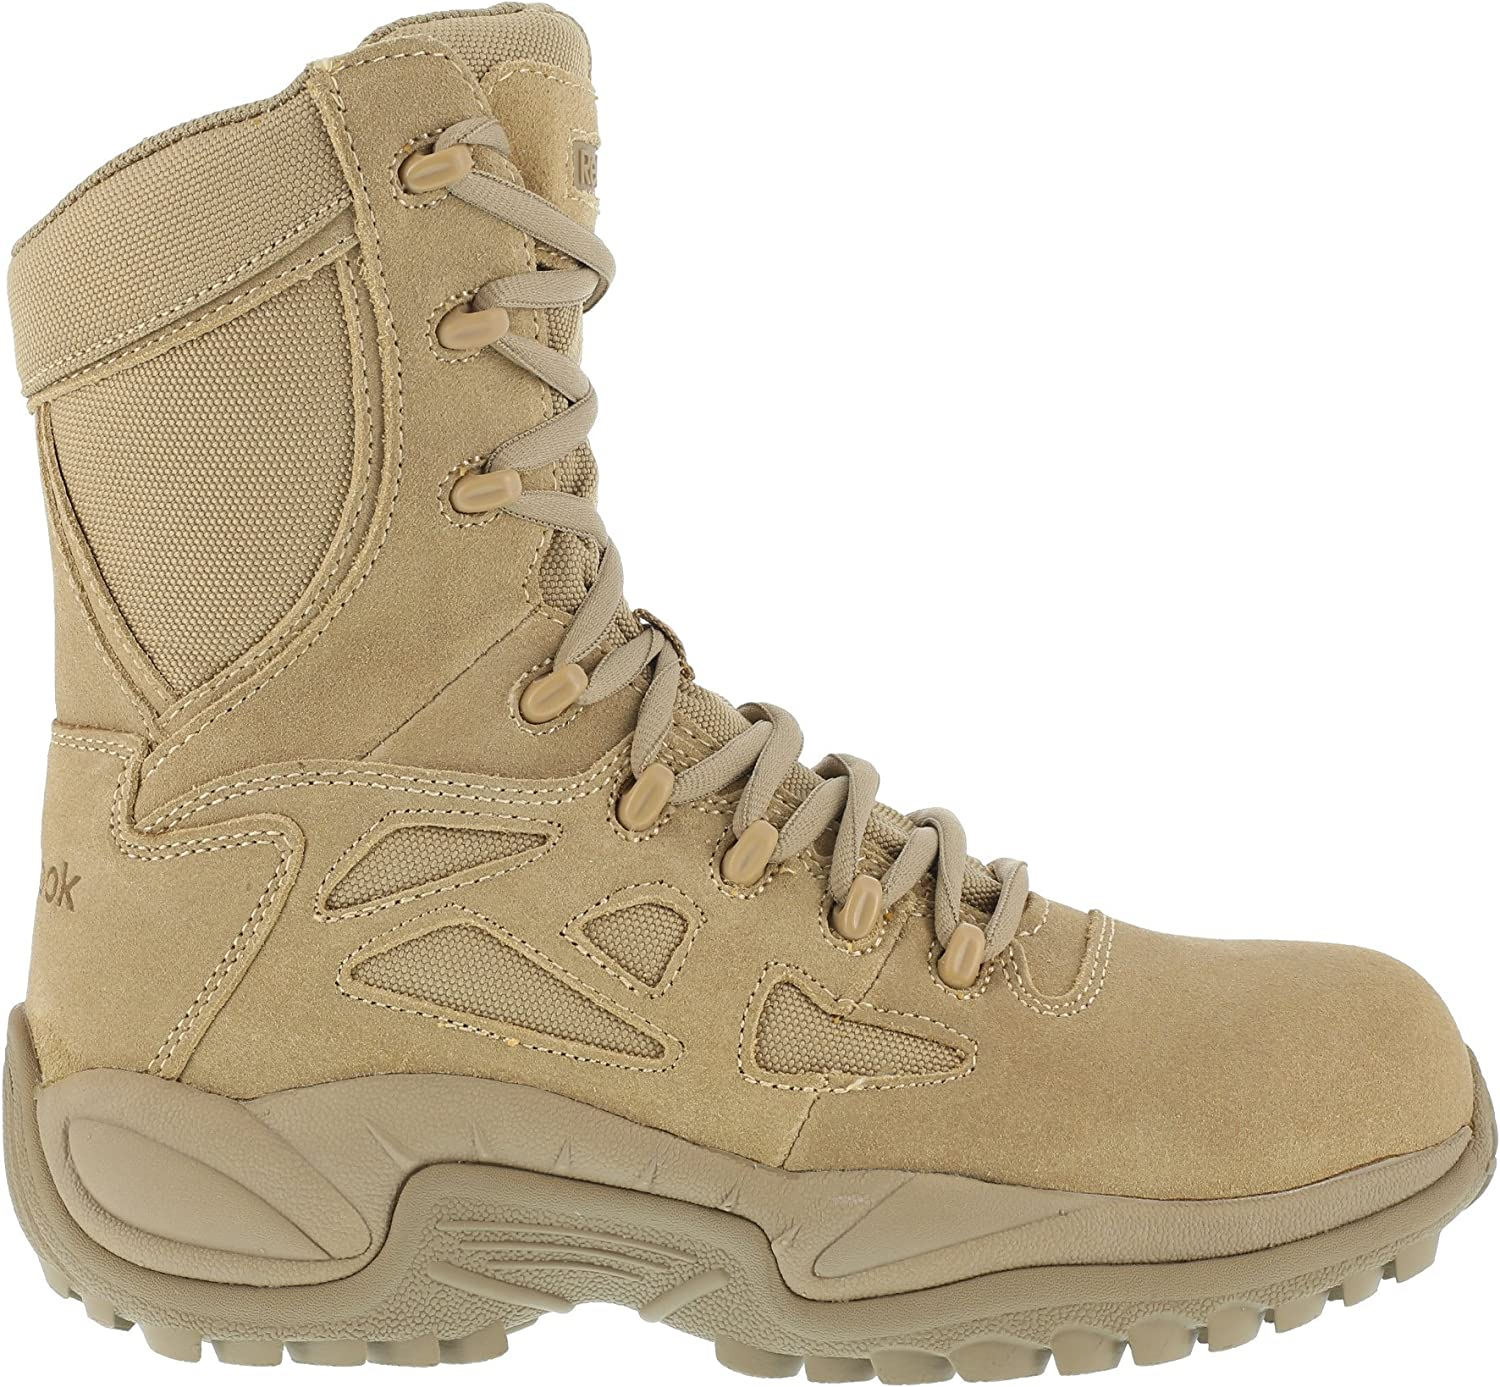 7 Tan Reebok Work Womens Rapid Response RB 8 Inch Composite Toe Side Zip Casual Work /& Safety Shoes